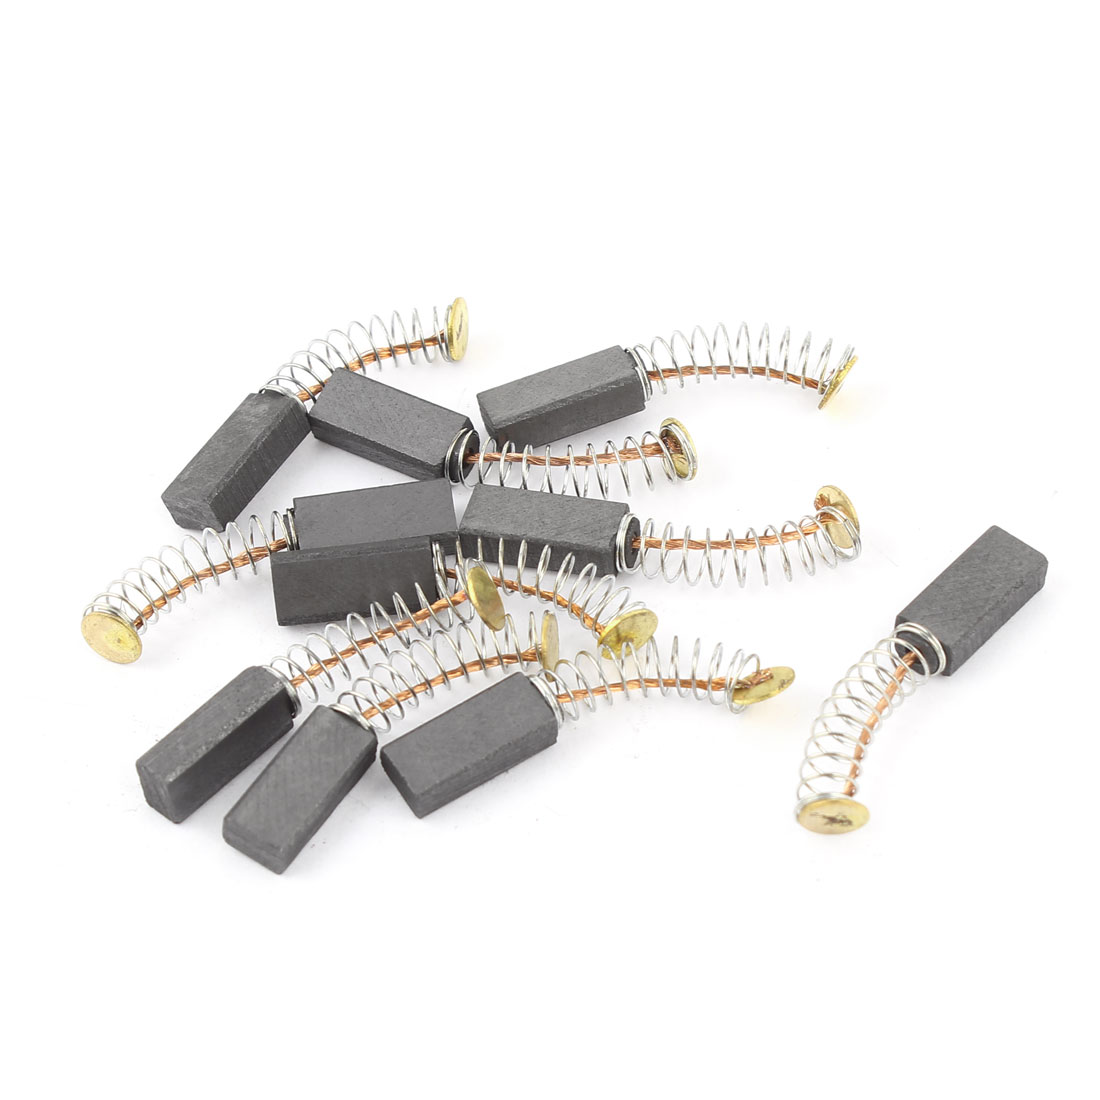 Dmiotech 10 Pcs Electric Drill Motor Carbon Brushes . | 10mm | 12mm | 17mm | 4mm | 5mm | 6.5mm | 6mm | 7.5mm | 8mm | 9mm dmiotech 20 pcs electric drill motor carbon brushes 10mm 11mm 13mm 17mm 6mm 7 5mm 7mm 8mm 9mm